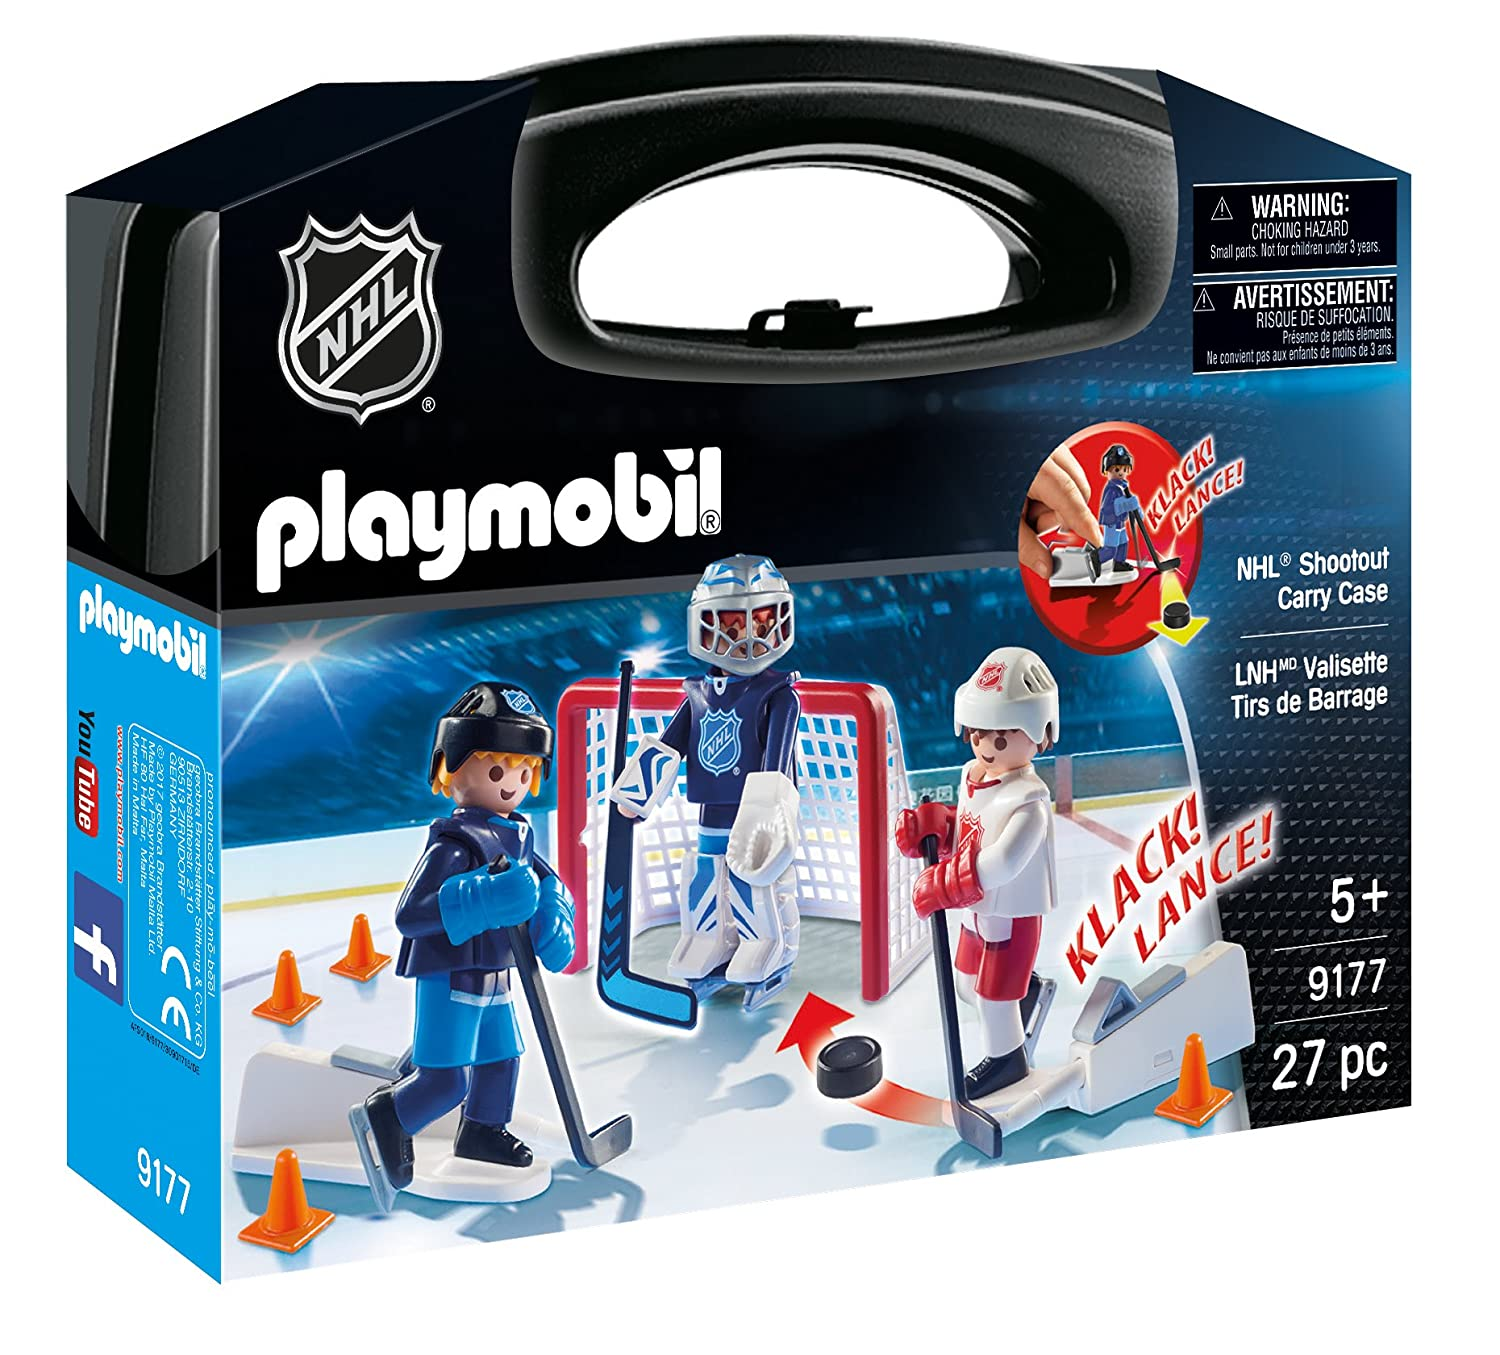 Playmobil NHL Shootout Carry Case 9177